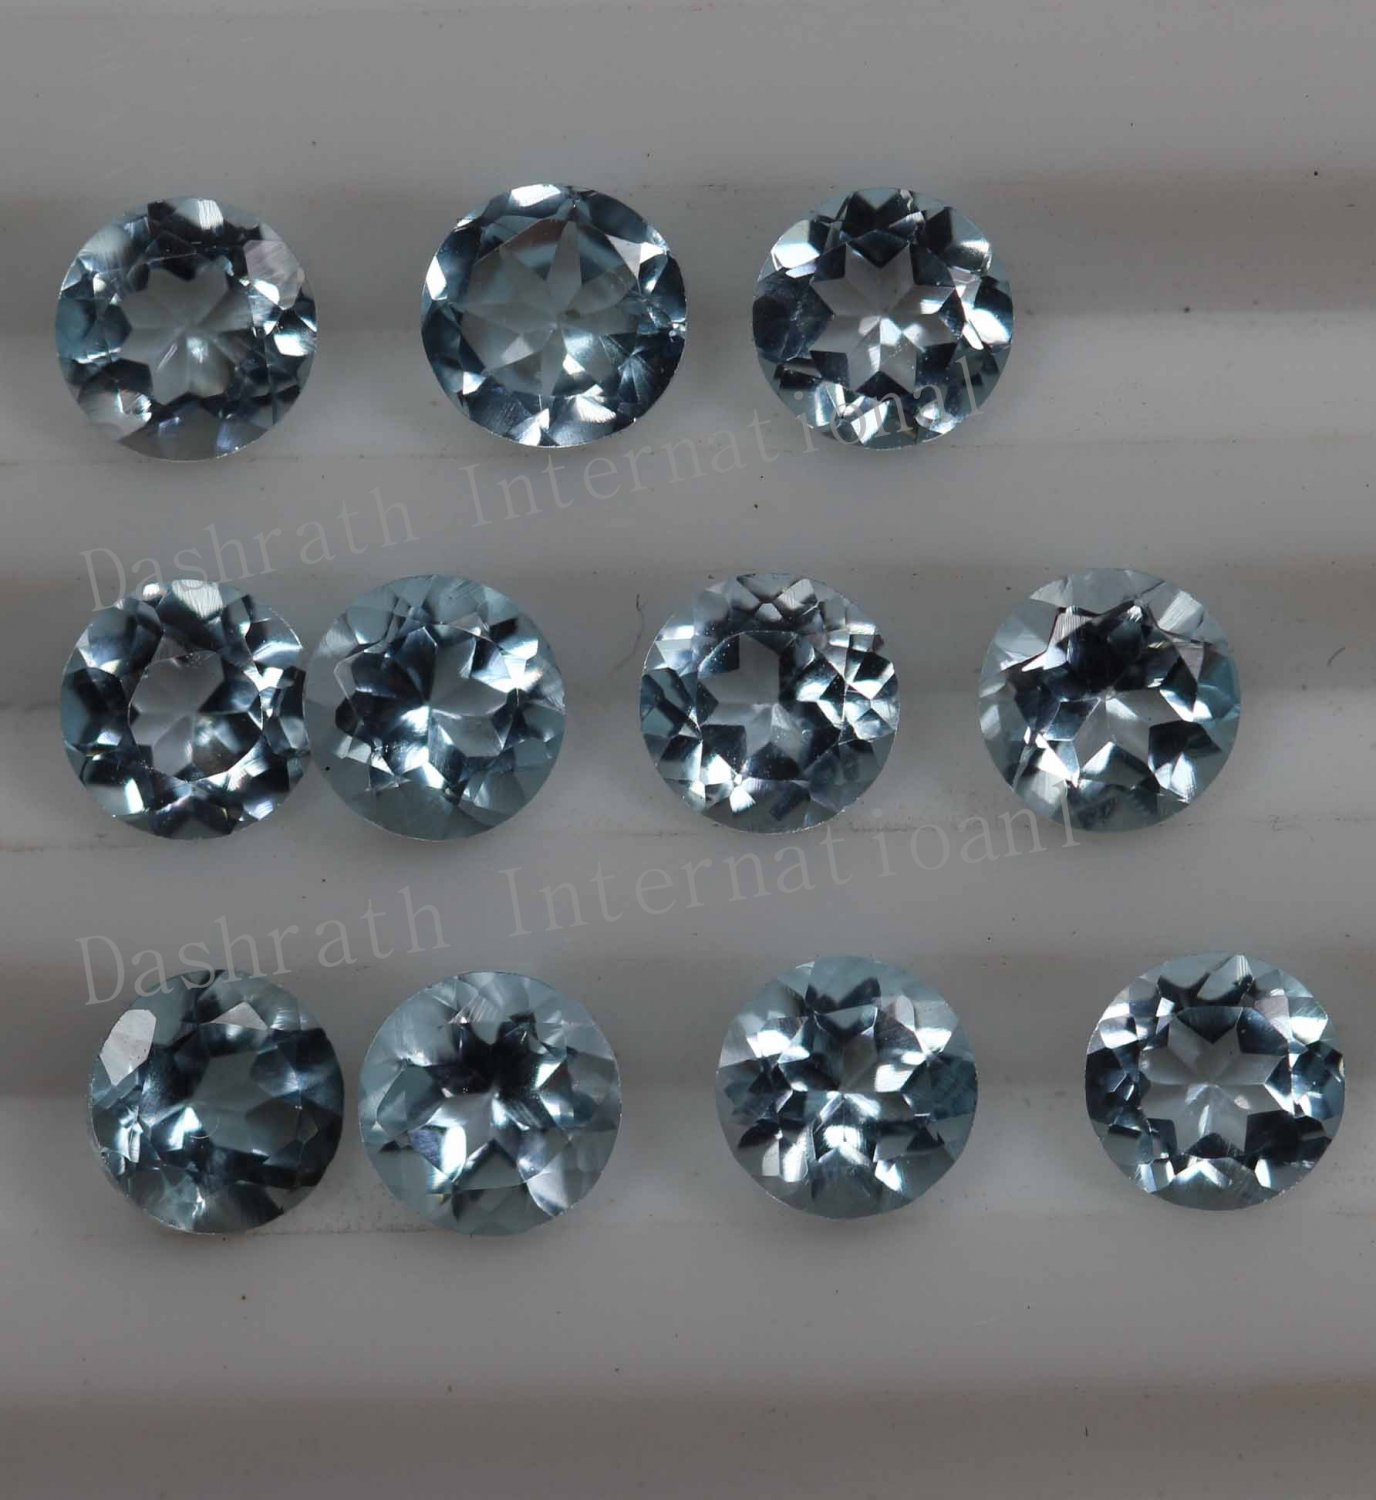 7mmNatural Sky Blue Topaz Faceted Cut Round 2 Piece (1 Pair ) Blue Color  Top Quality Loose Gemstone